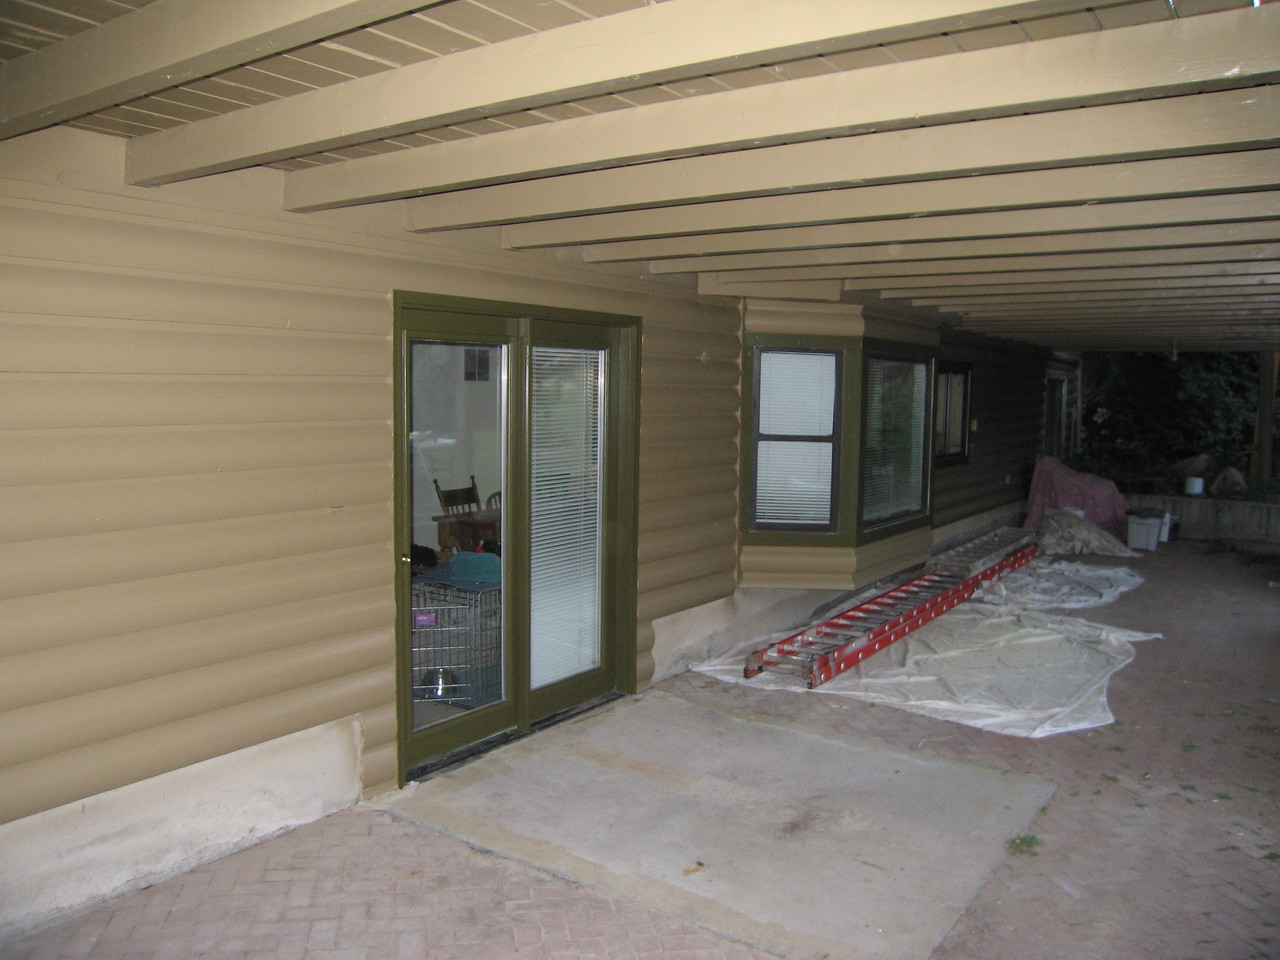 A view of the basement patio, under the deck